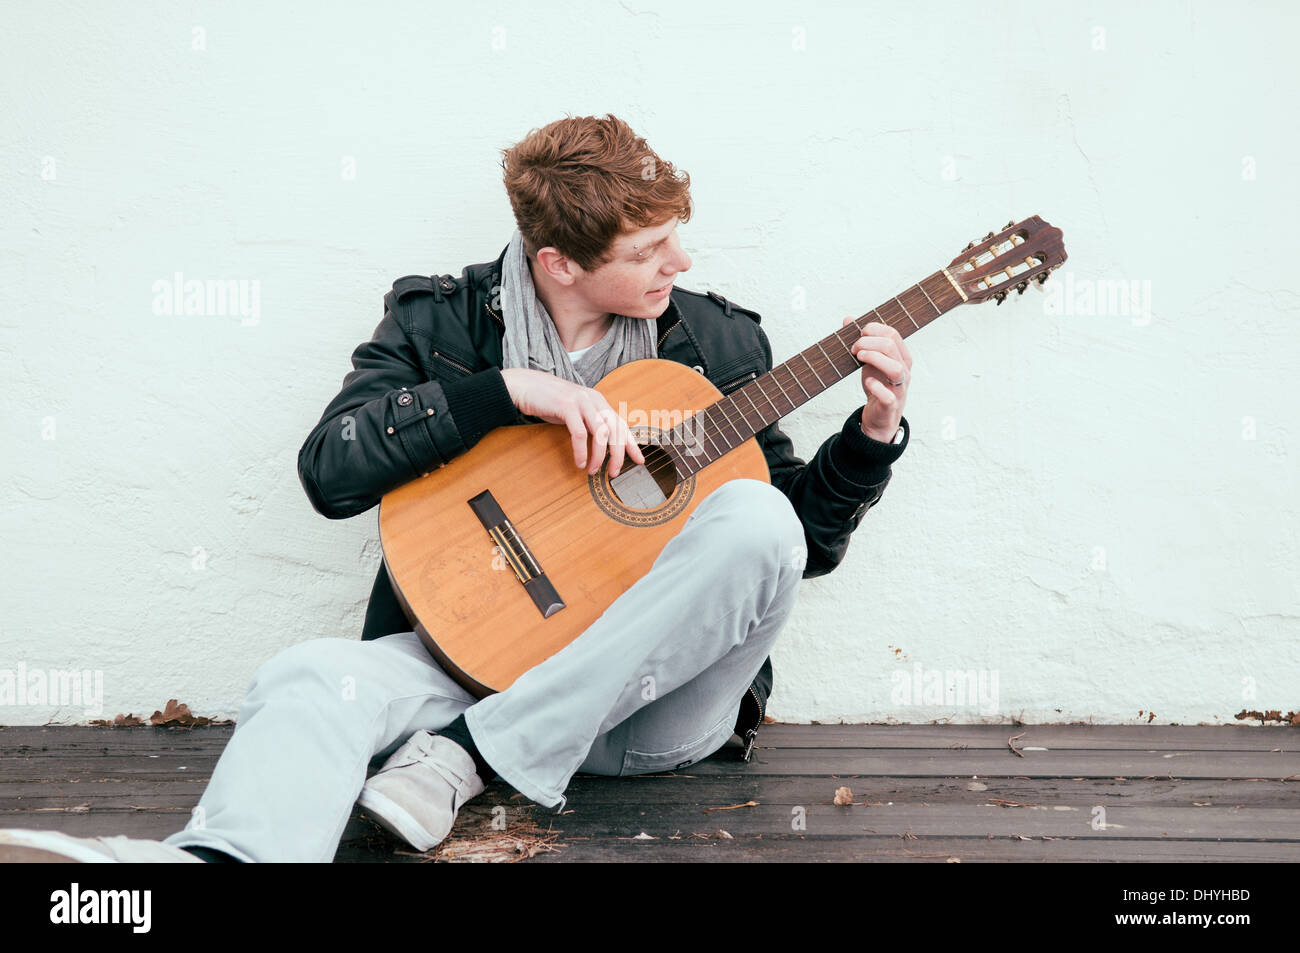 Handsome young man playing acoustic guitar - Stock Photo